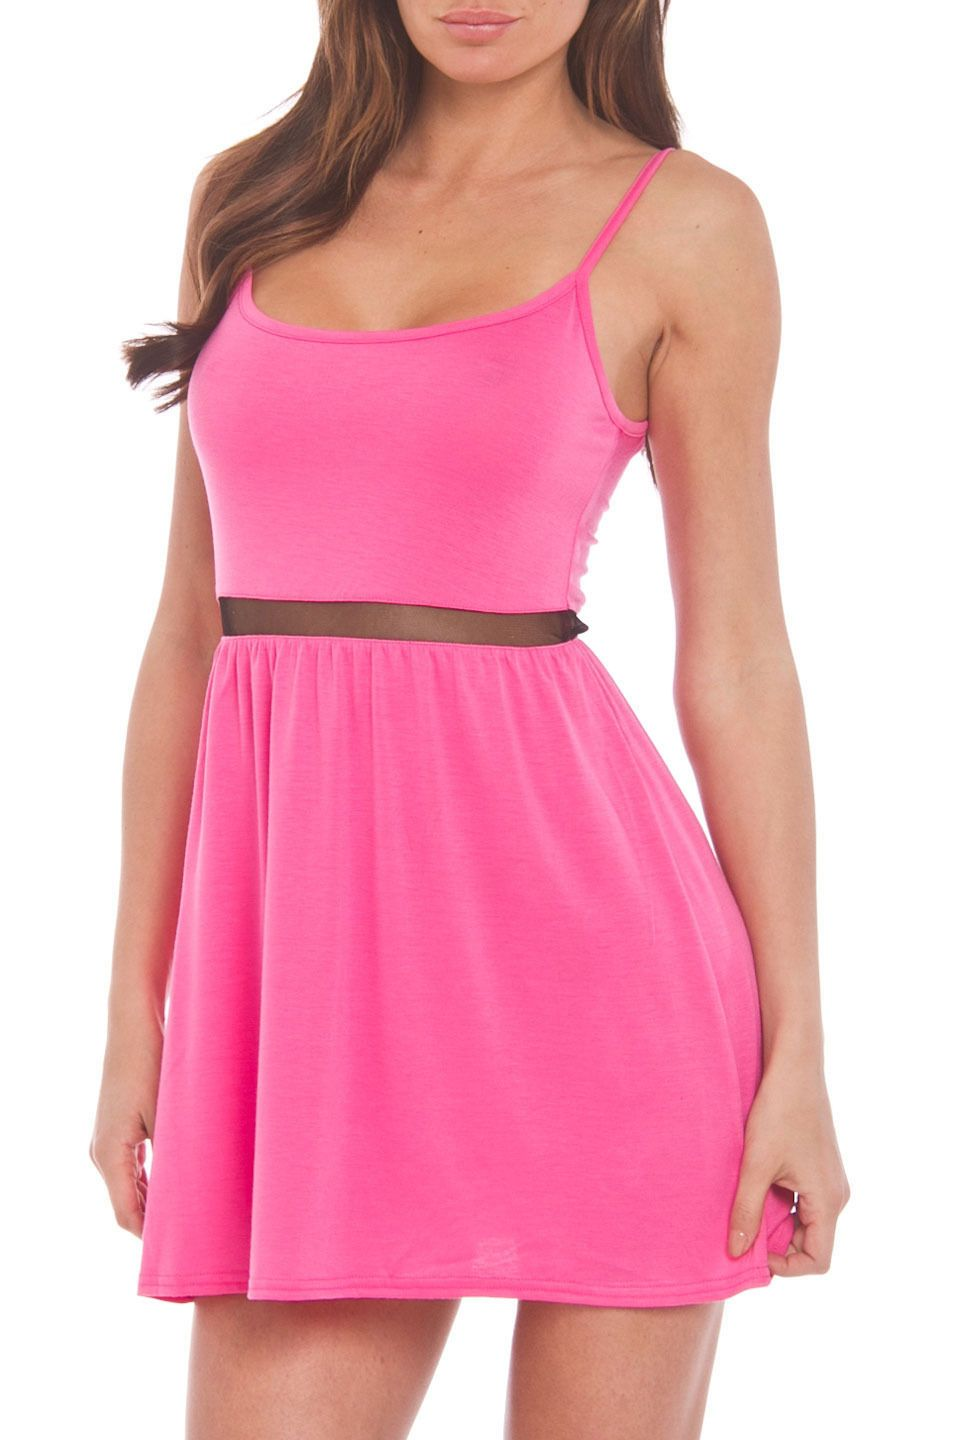 ApparelCandy Sheer Panel Illusion Cut Out Dress in Pink - Beyond the Rack